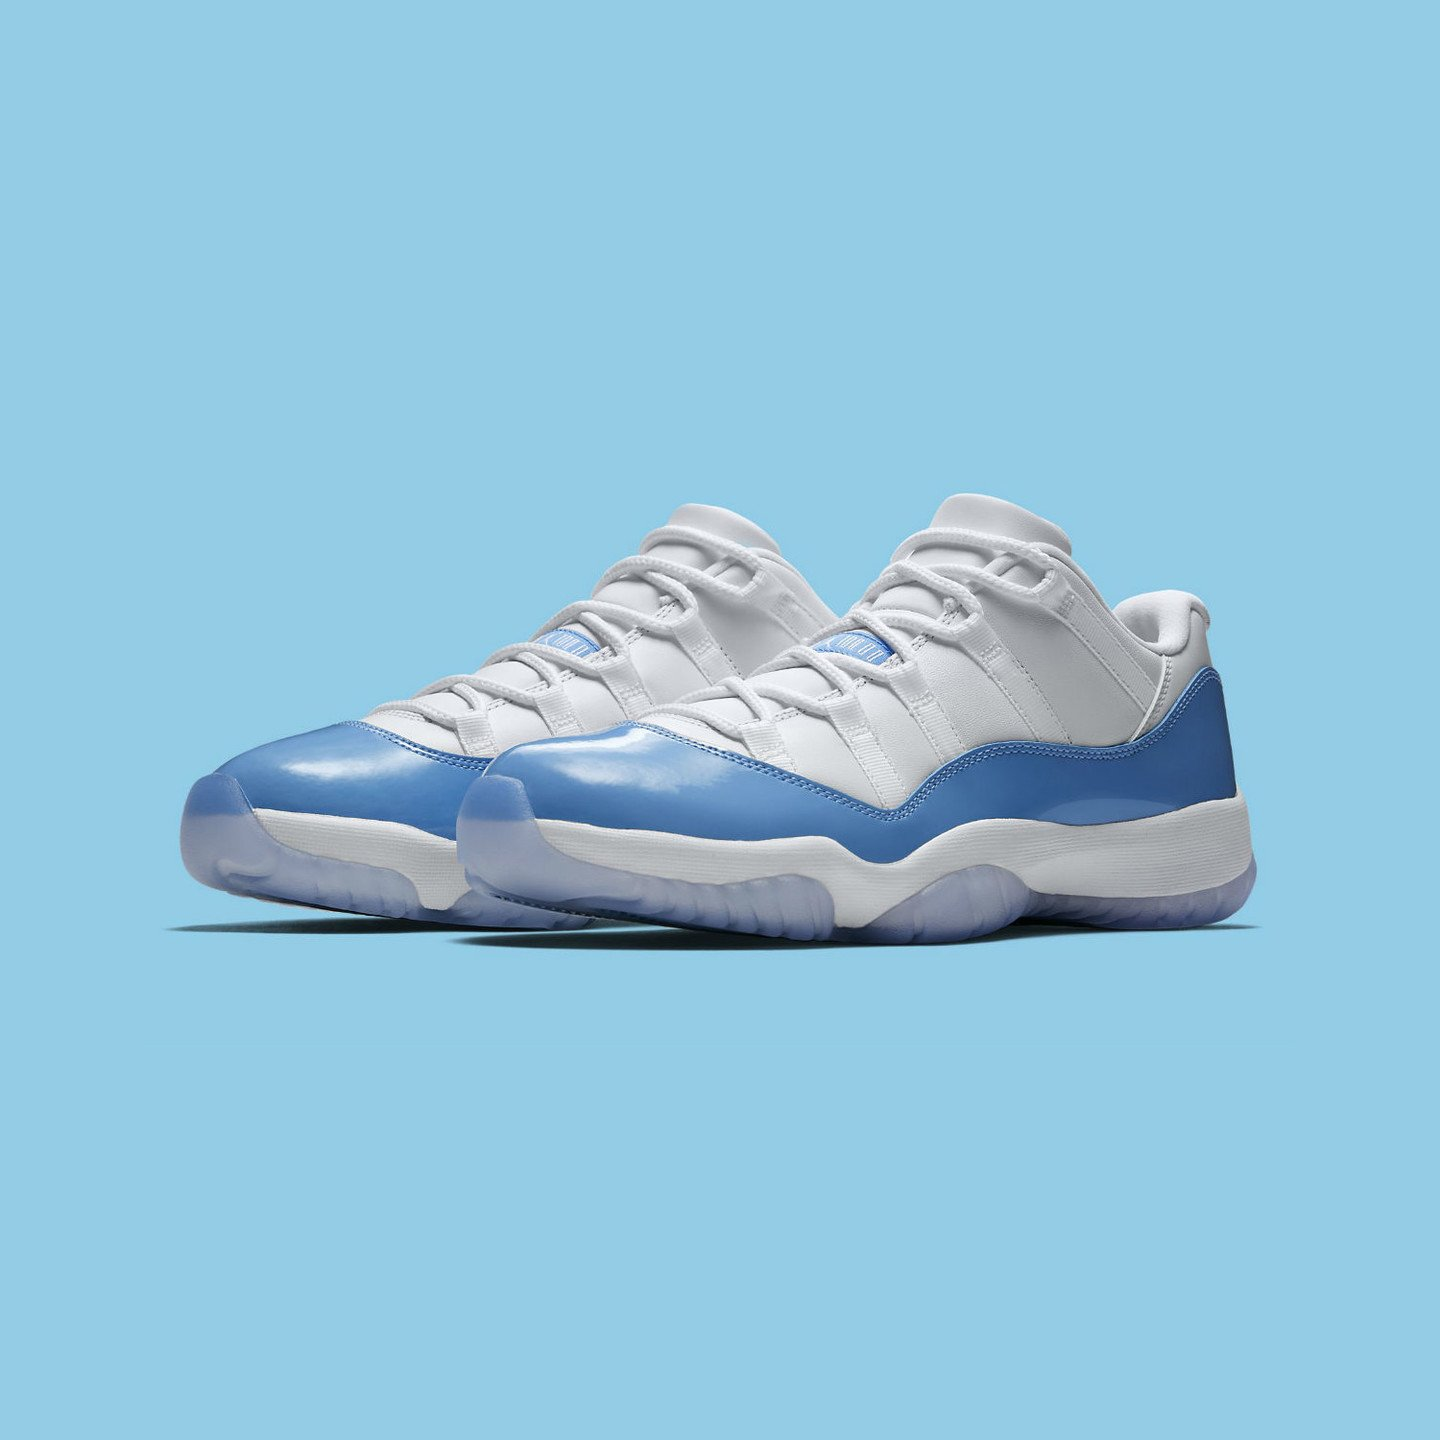 Jordan Air Jordan 11 Retro Low 'UNC' White / University Blue 528895-106-44